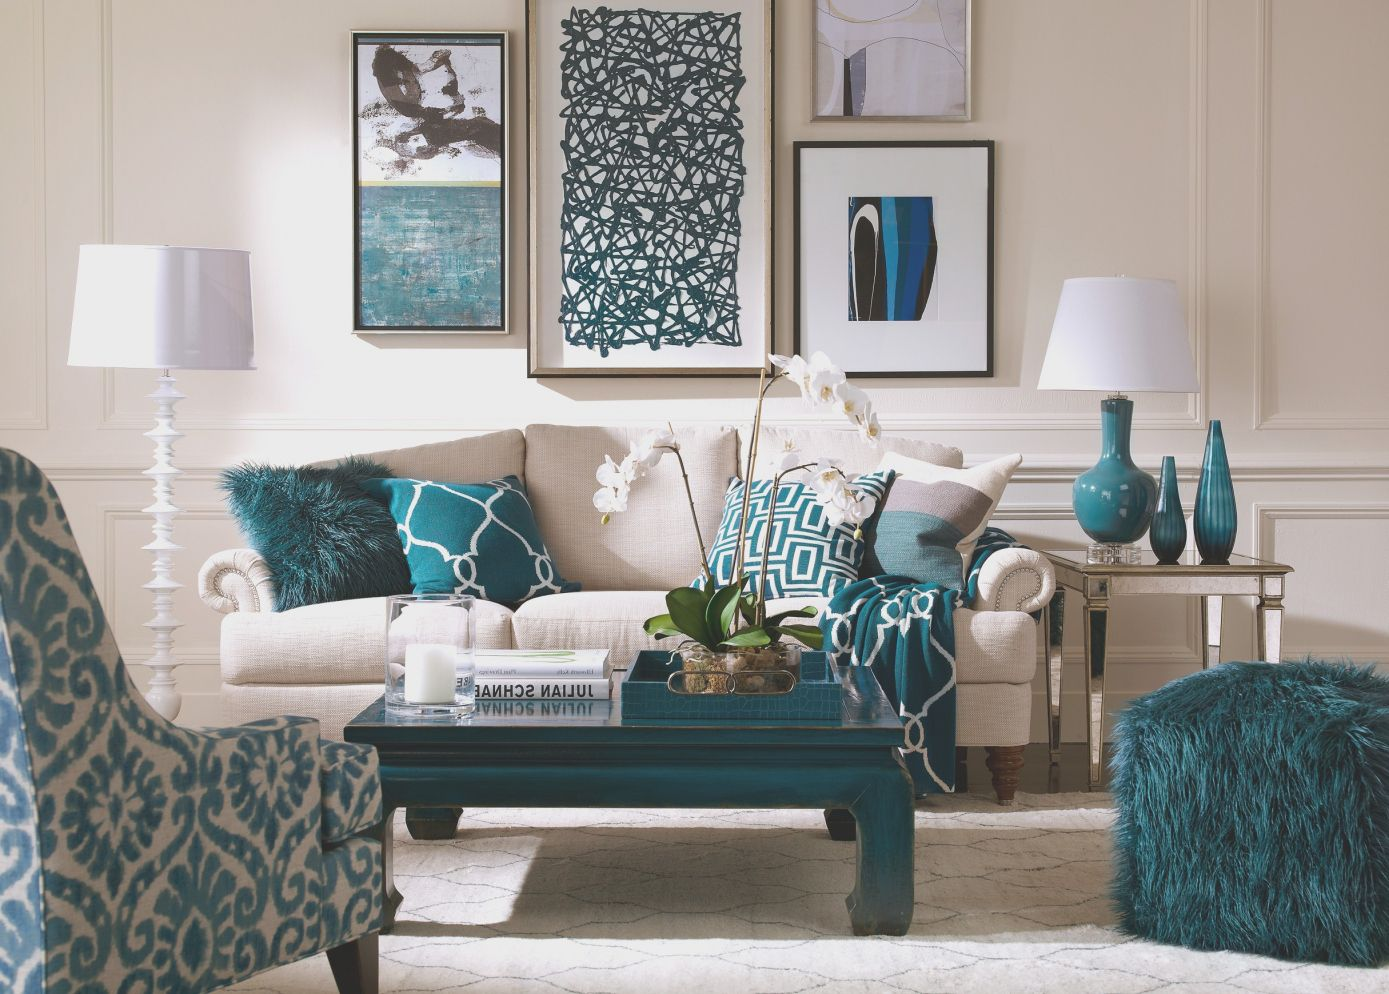 peacock living room inspired sage pin by hendro birowo on modern design low budget 2019 bedroom decor ideas interior paint colors 2017 check more at http